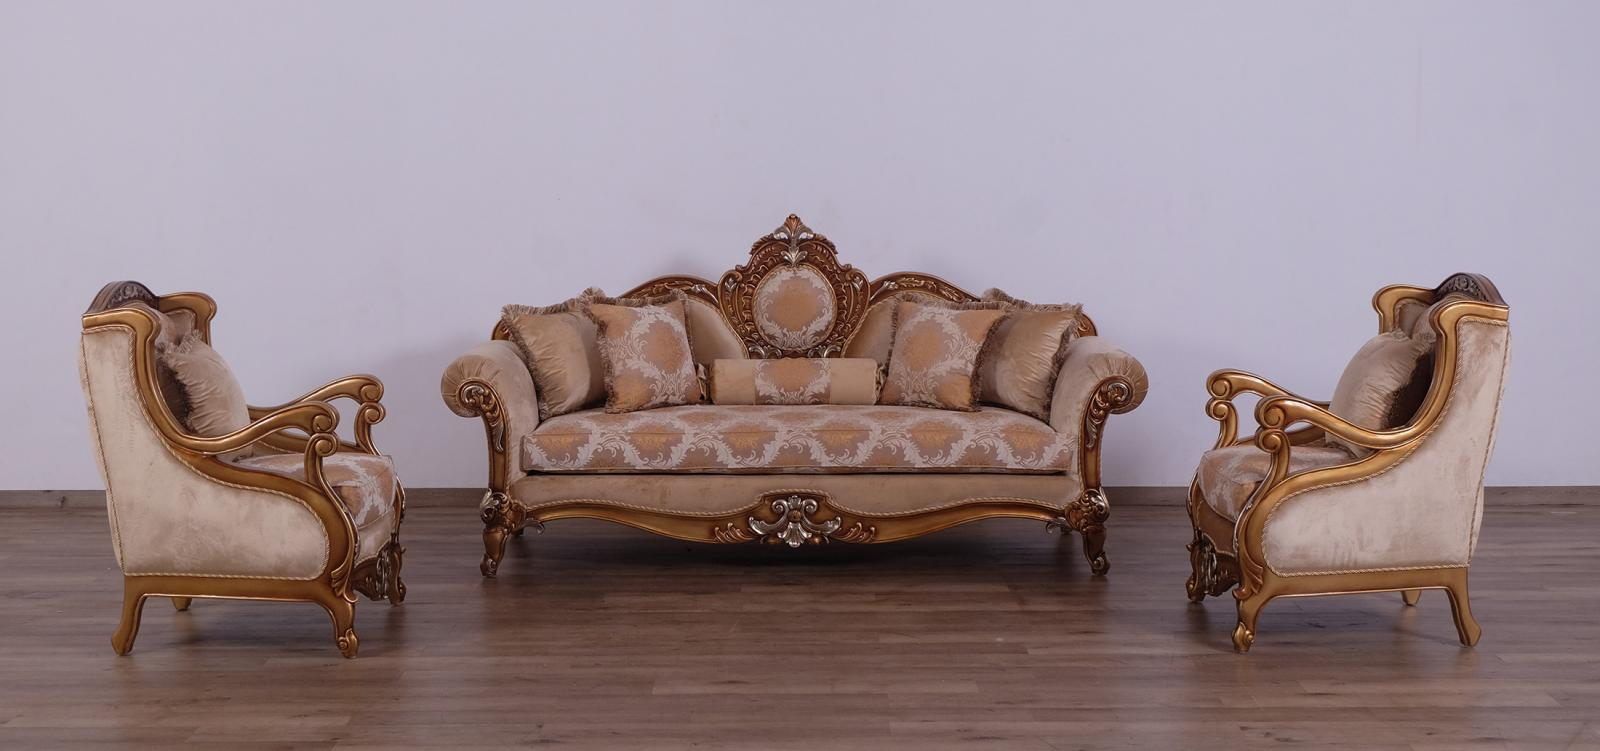 Classic  Traditional Brown  Gold  Silver Wood  Solid Hardwood and Fabric Sofa Set EUROPEAN FURNITURE 41026-S-Set-3